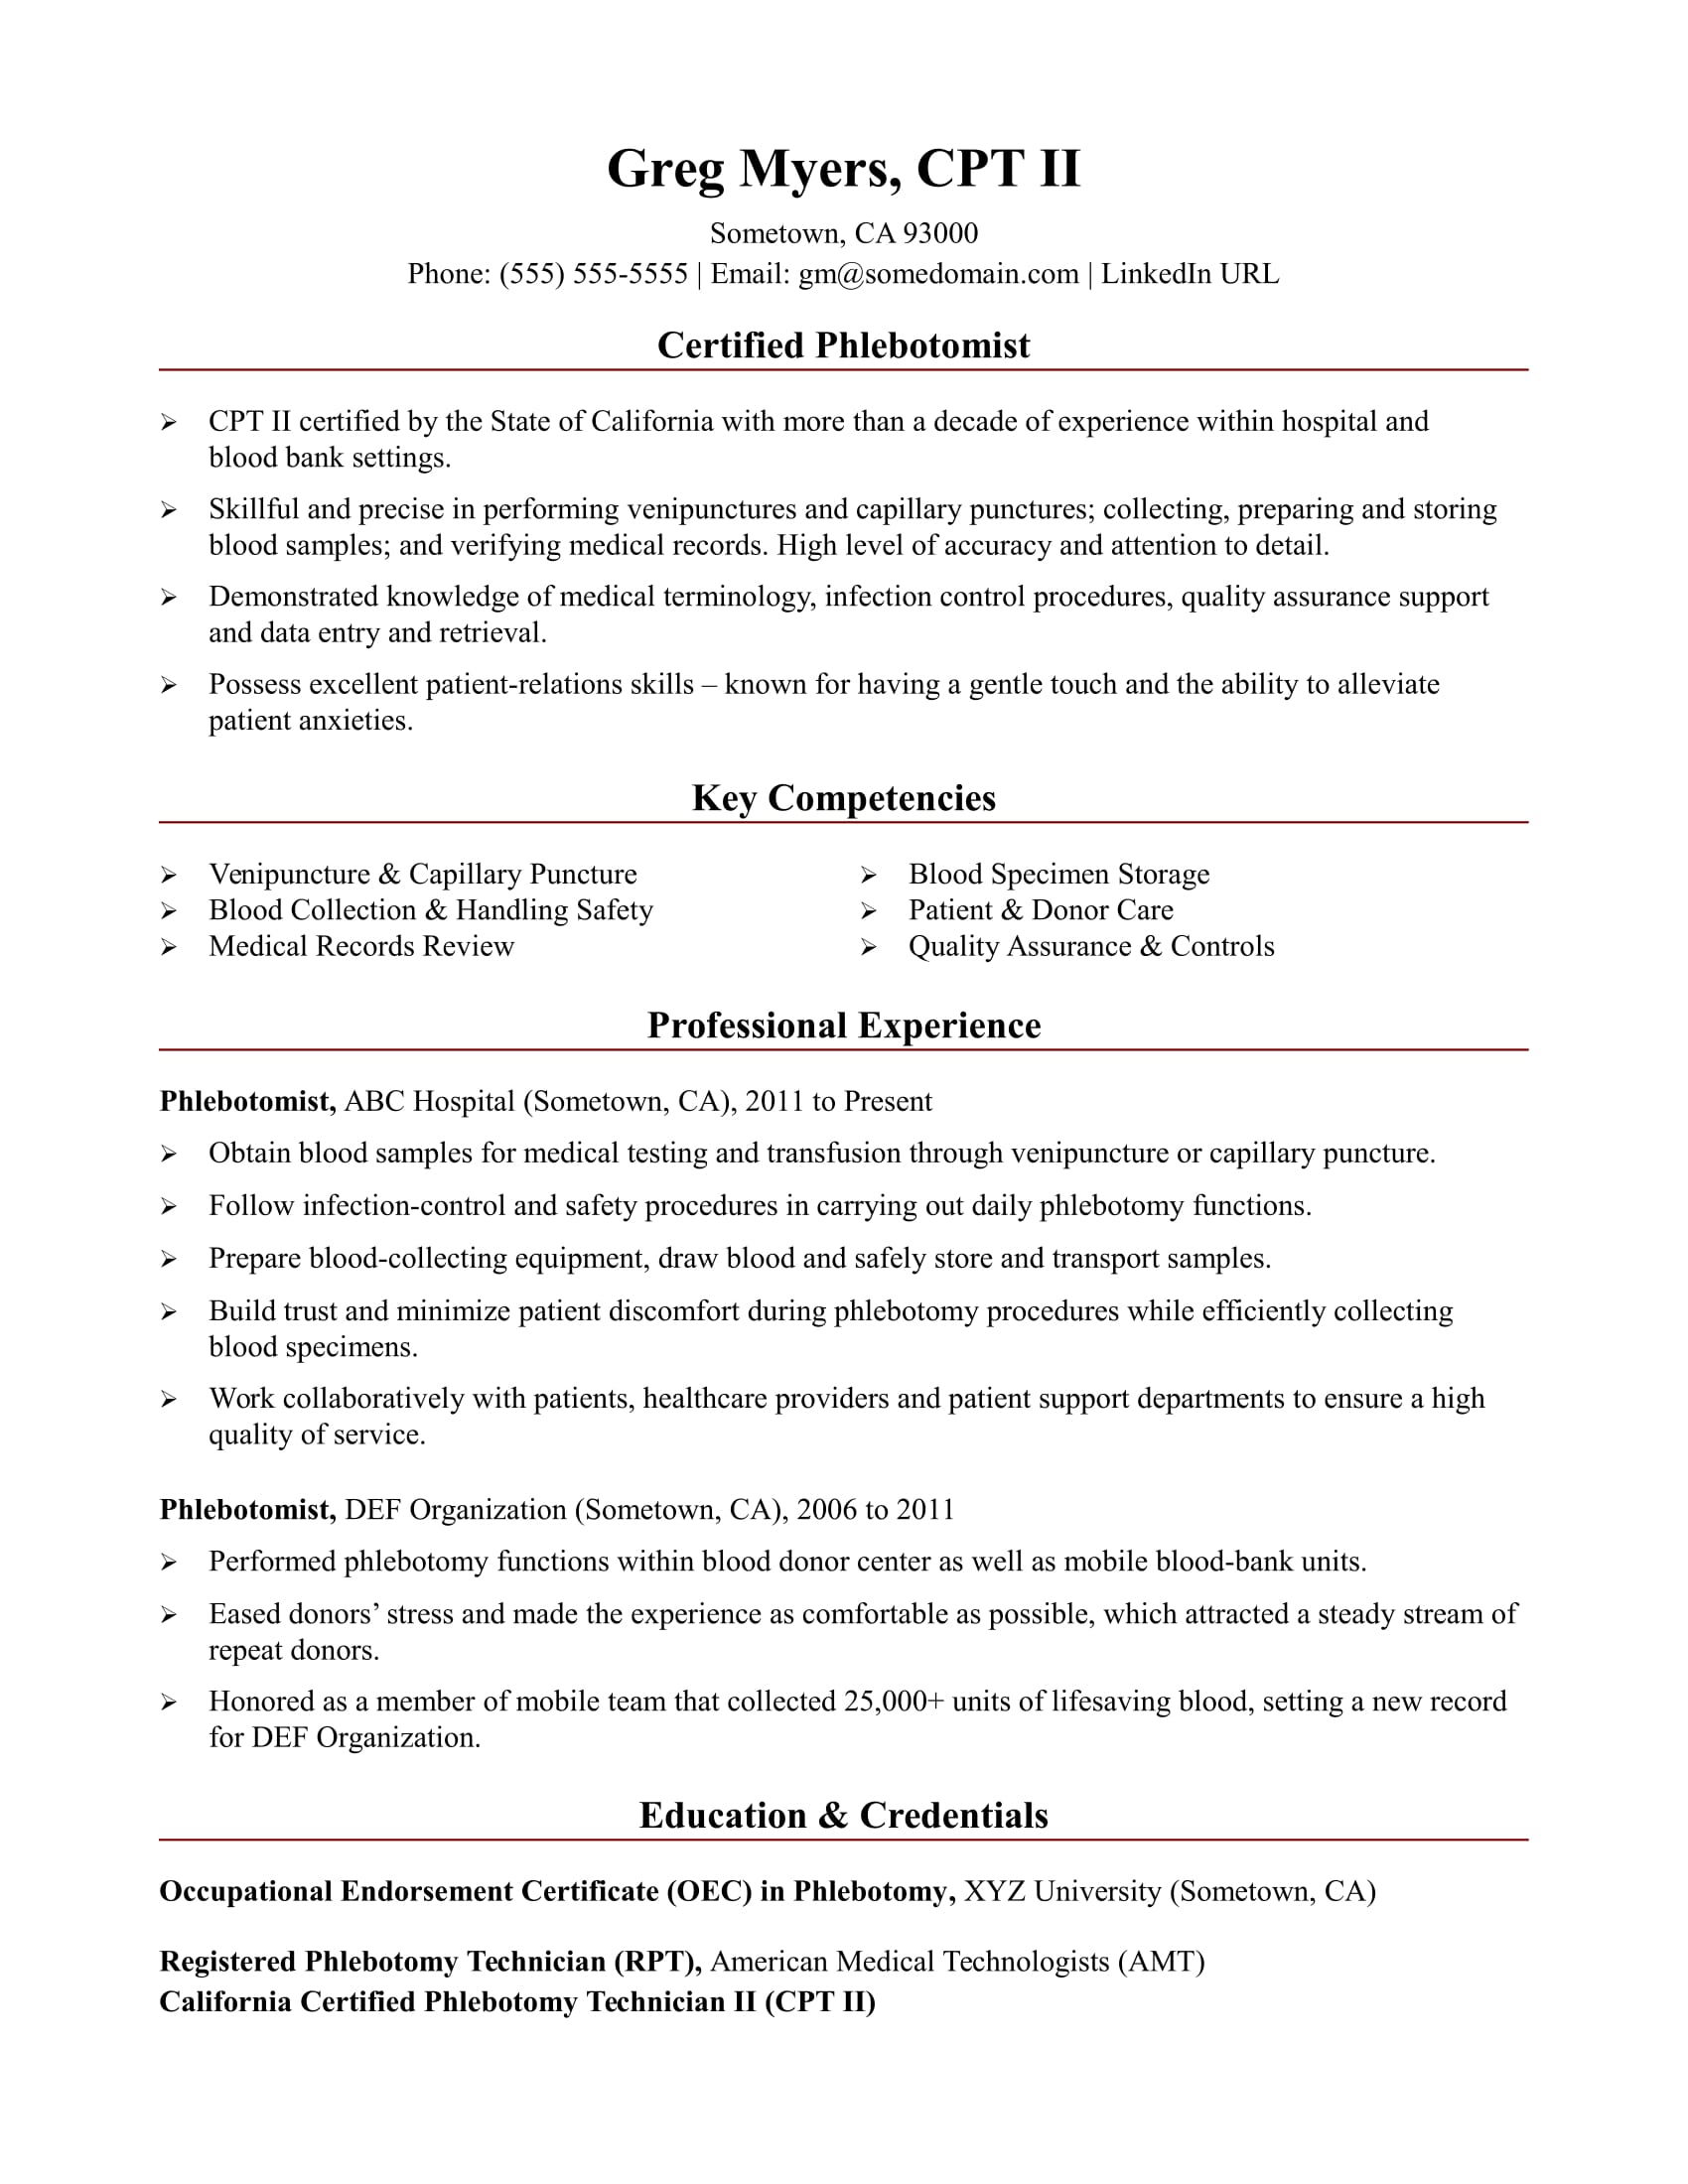 sample resume for a phlebotomist - It Sample Resume Format